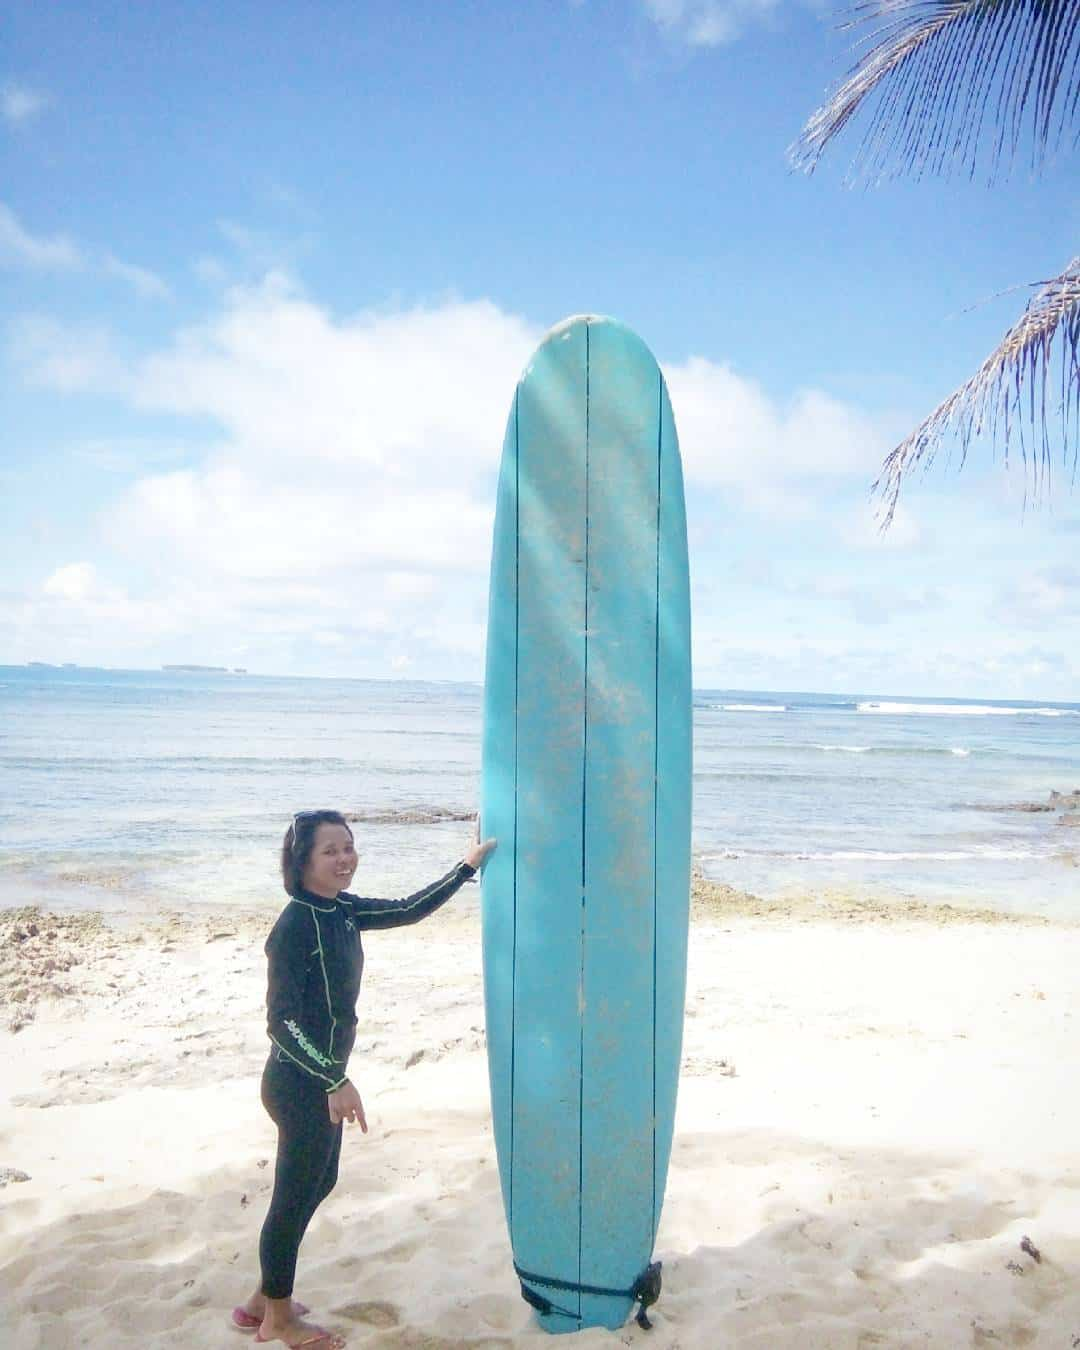 My height is half the height of the surfboard Ihellip